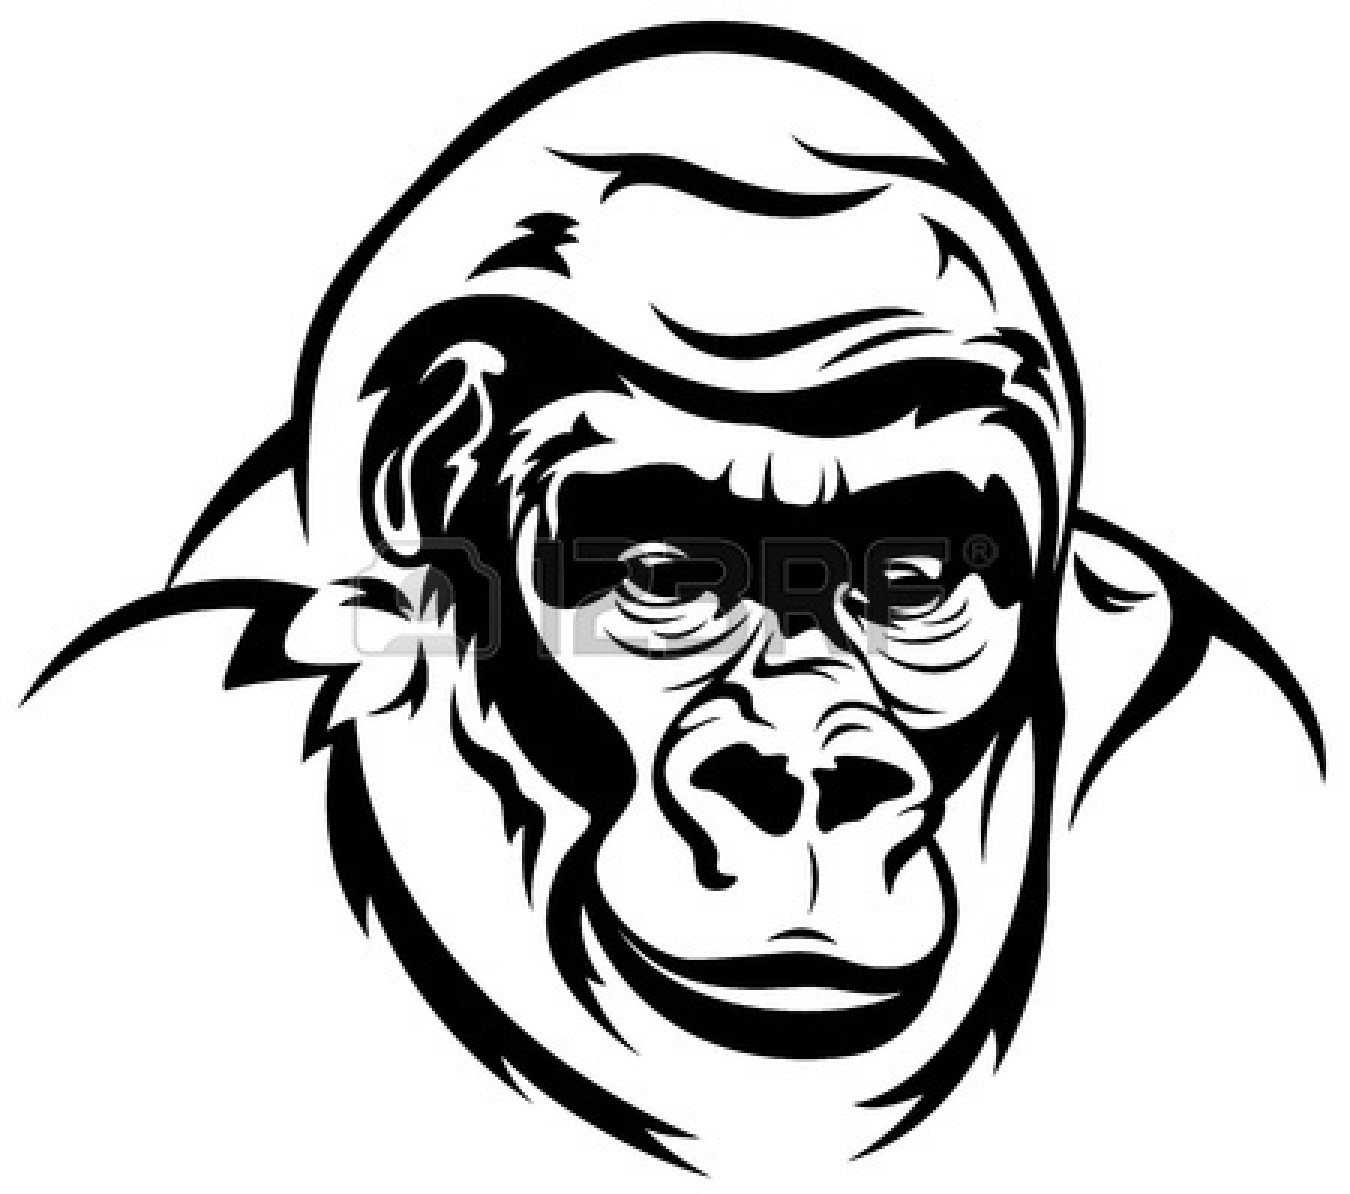 Gorilla Clip Art Black And White   Clipart Panda   Free Clipart Images